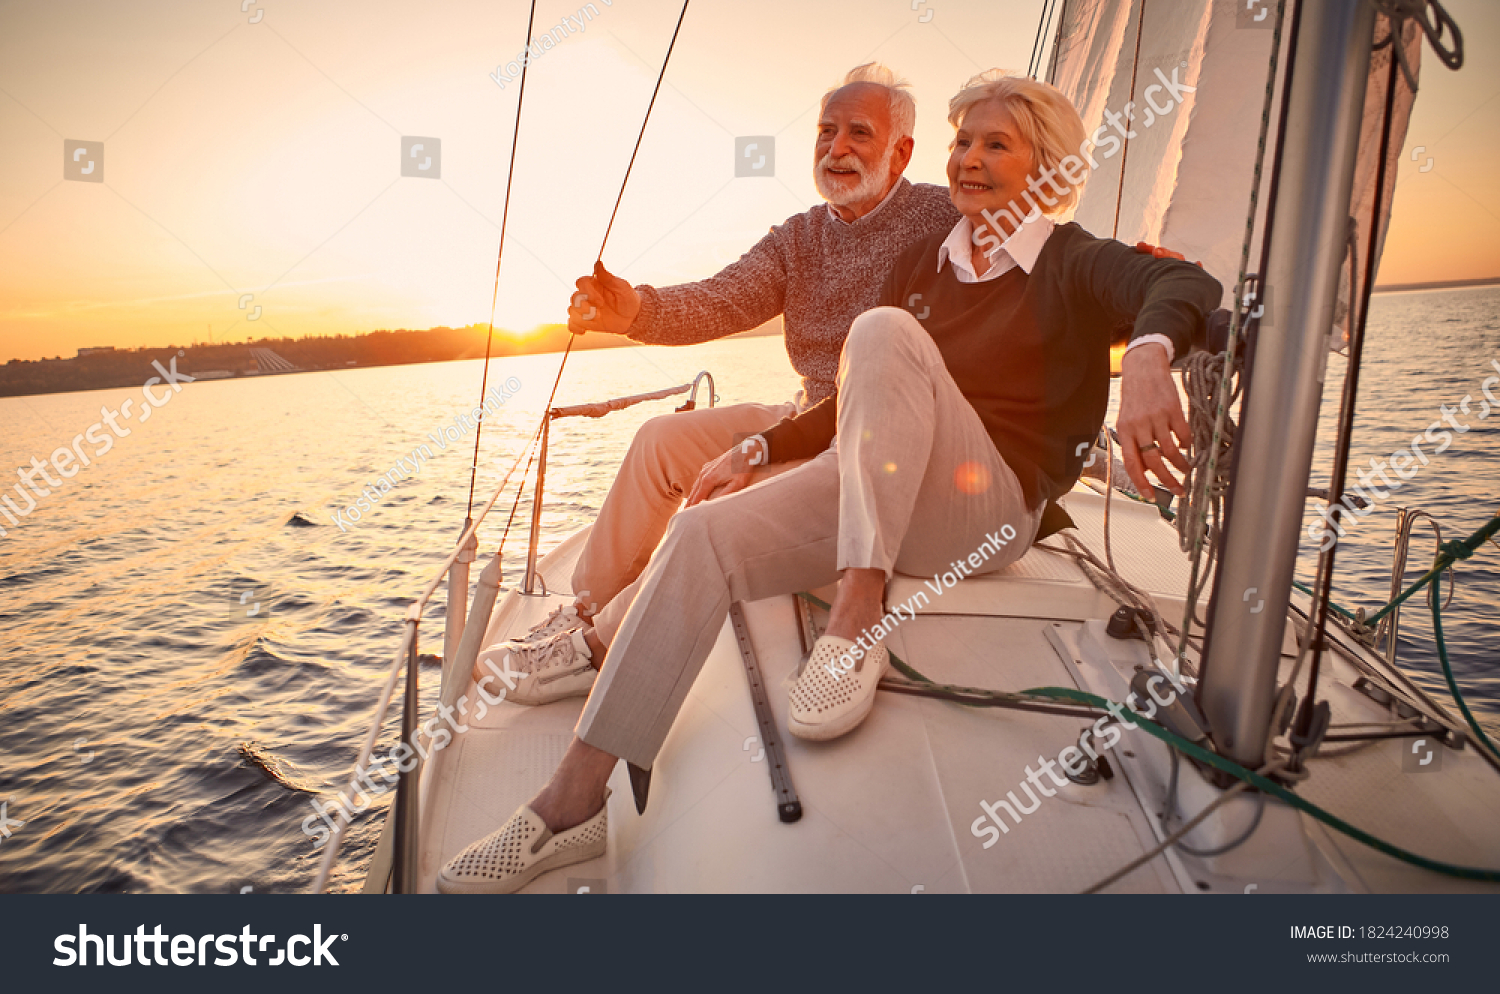 Beautiful and happy senior couple in love sitting on the side of sailboat or yacht deck floating in sea at sunset and enjoying amazing view, sailing together #1824240998